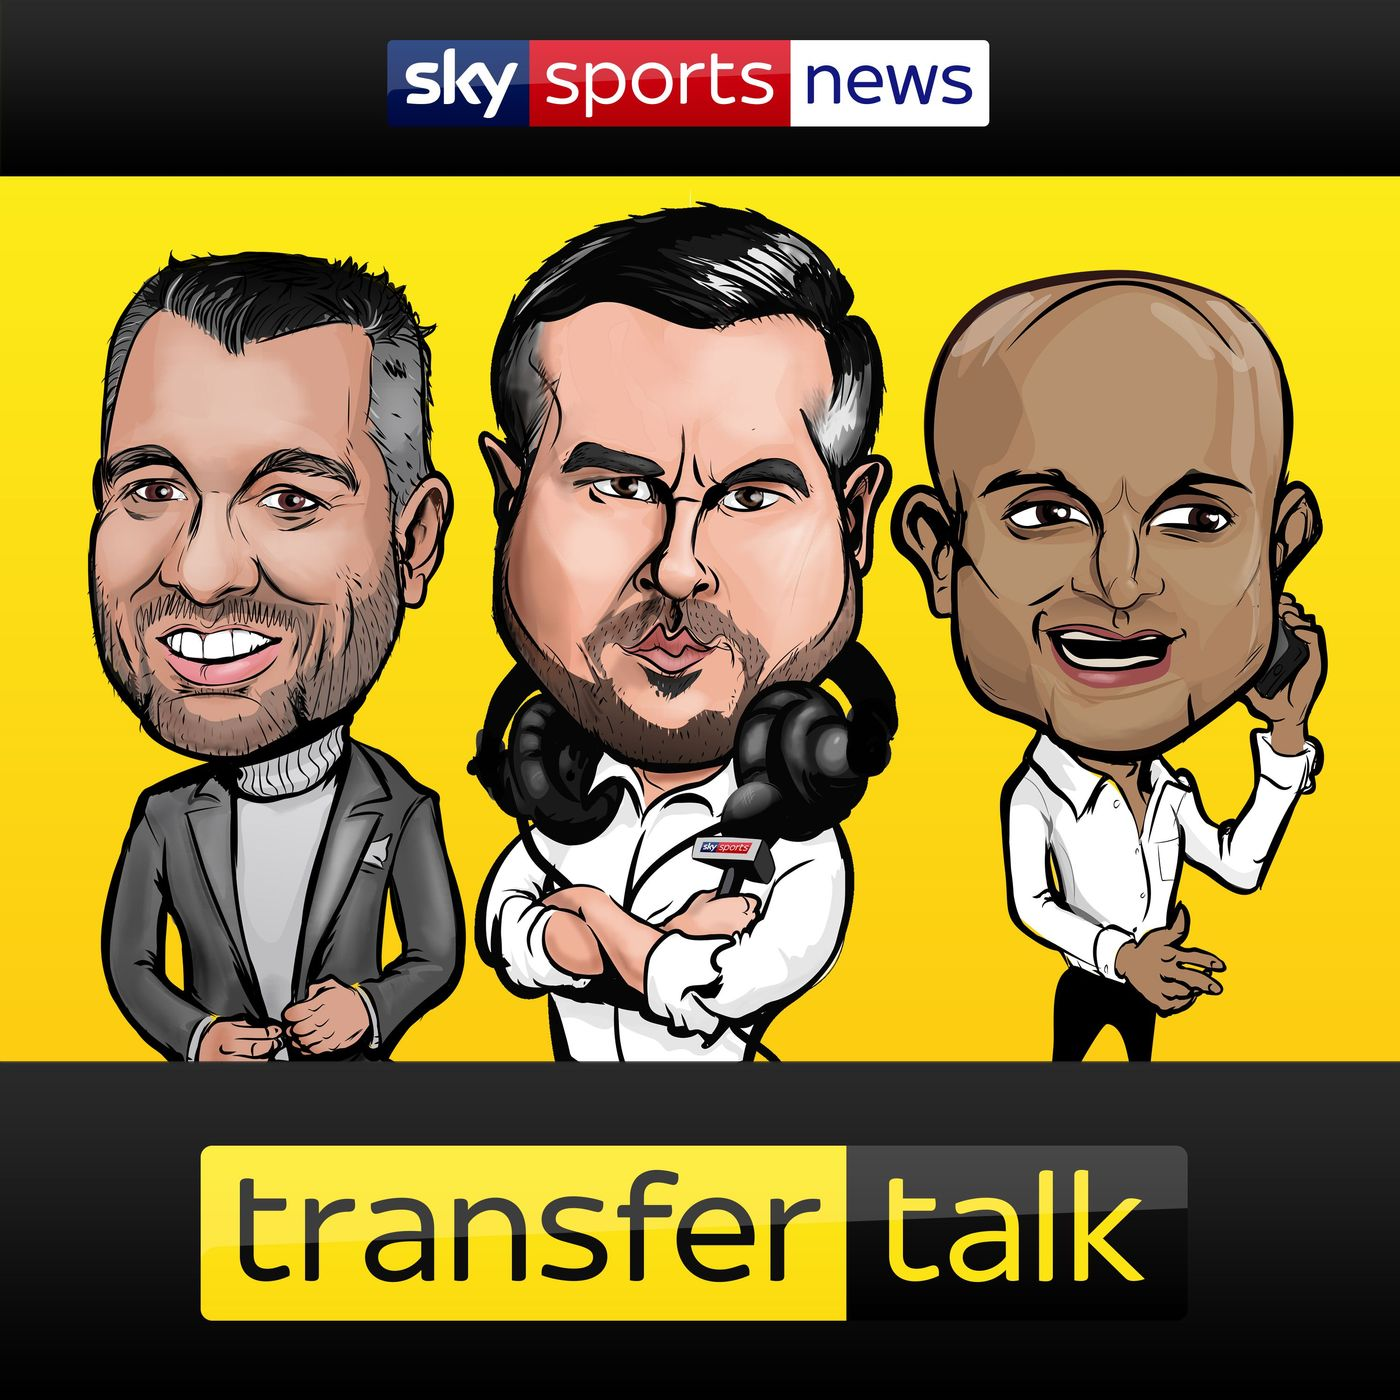 Will Liverpool buy a Coutinho replacement, are Man City closing in on Sanchez and could Man Utd move for Lucas Moura?